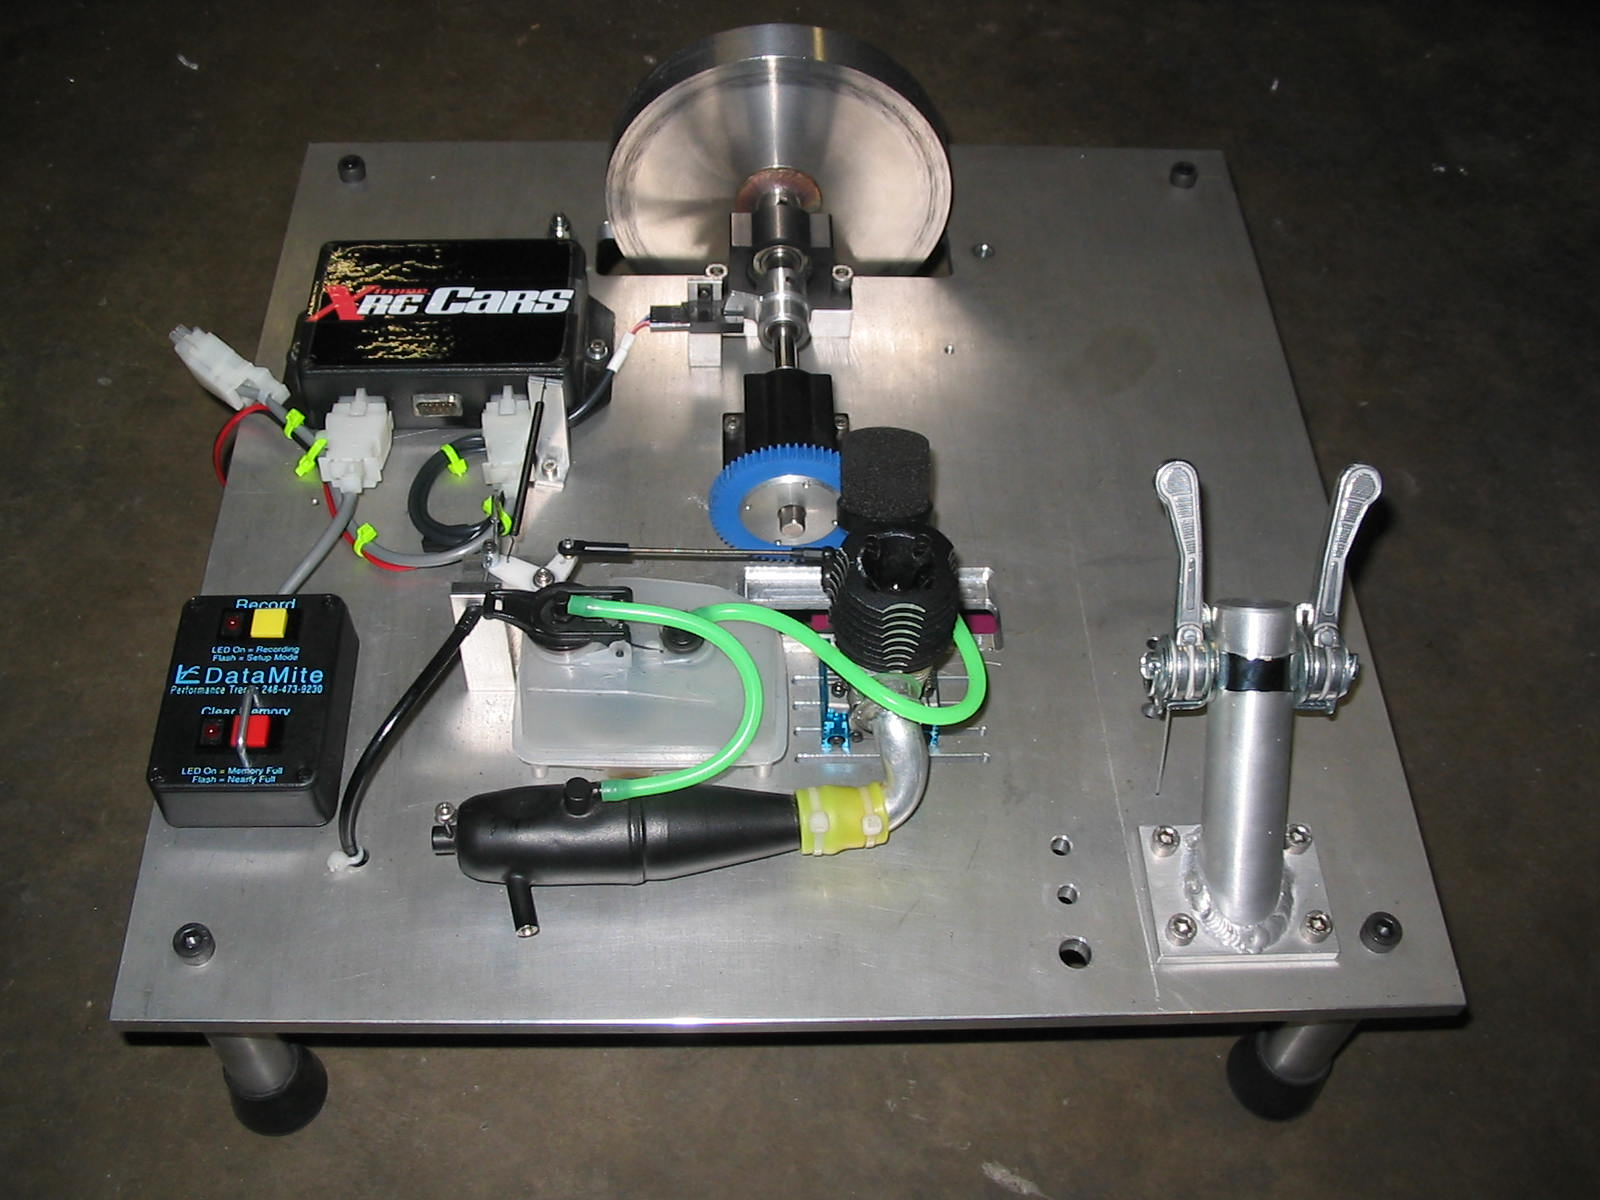 How to measure an engine 39 s torque r c tech forums for Measure torque of a motor